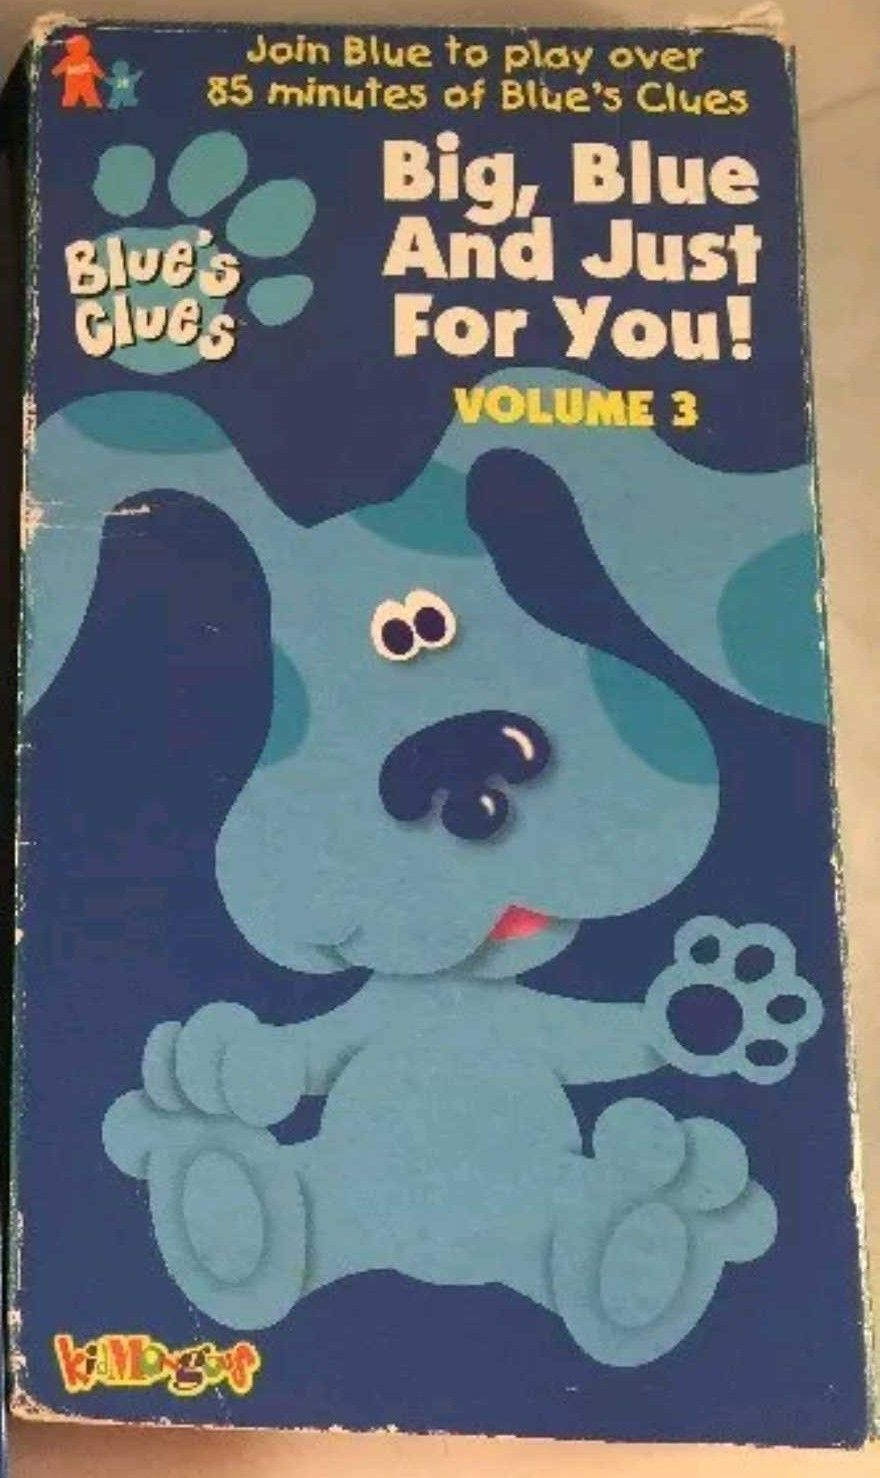 Blue's Clues: Big, Blue and Just for You! Volume 3 (1999 VHS)